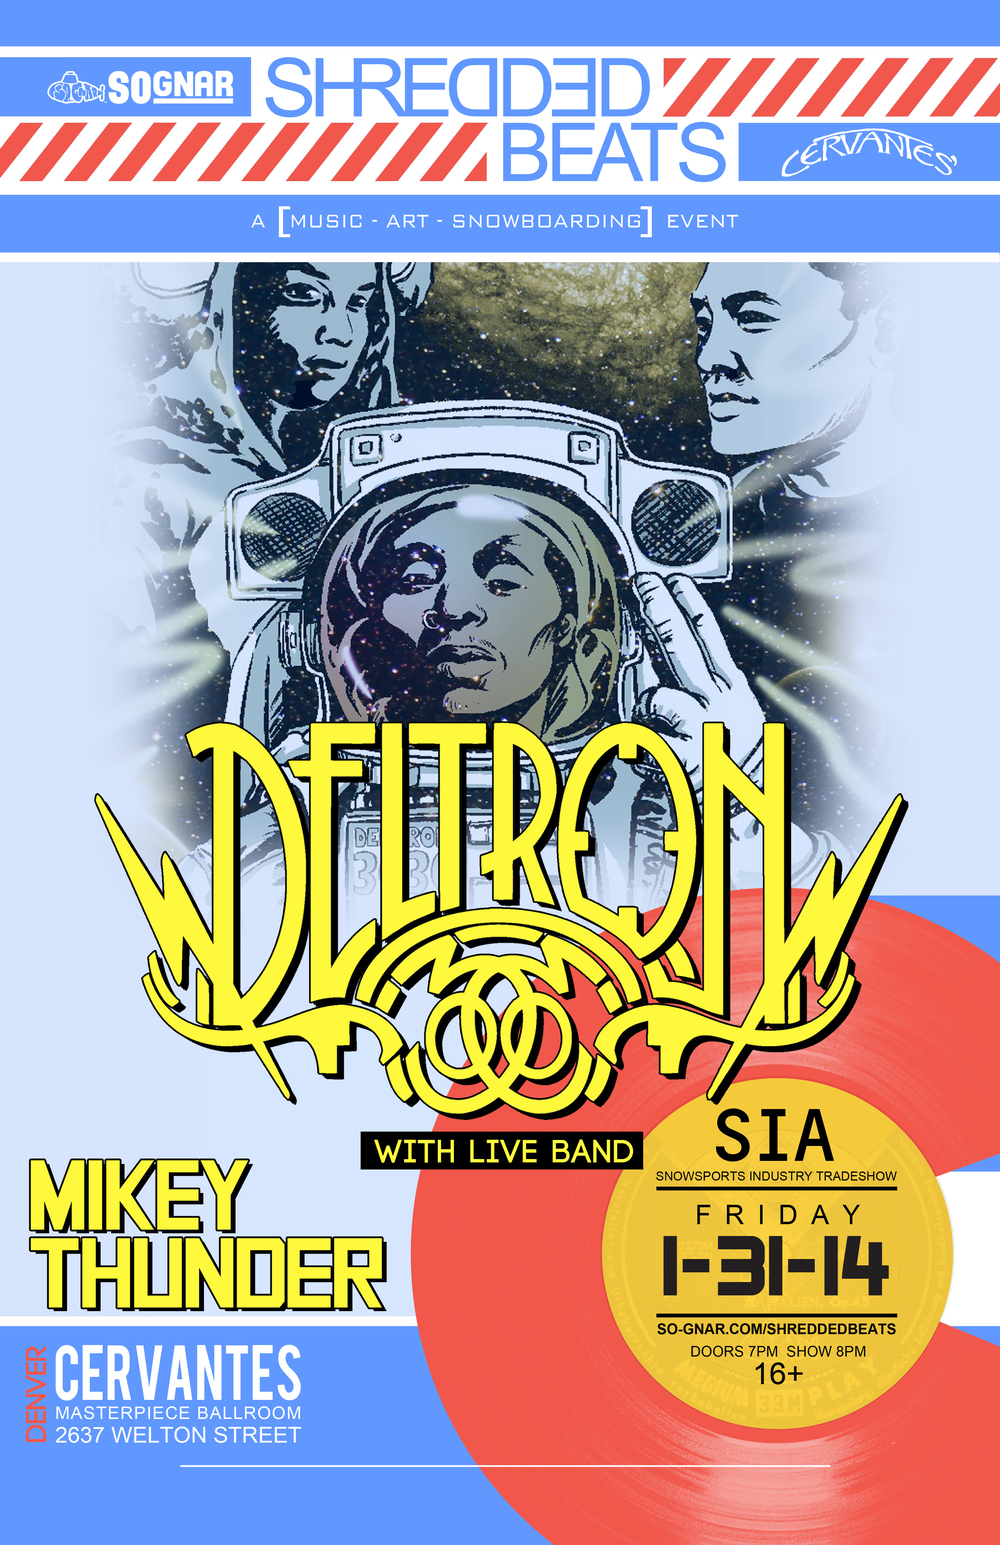 WINTER_ShreddedBeats_SIA_2014_11x17_Deltron.jpg